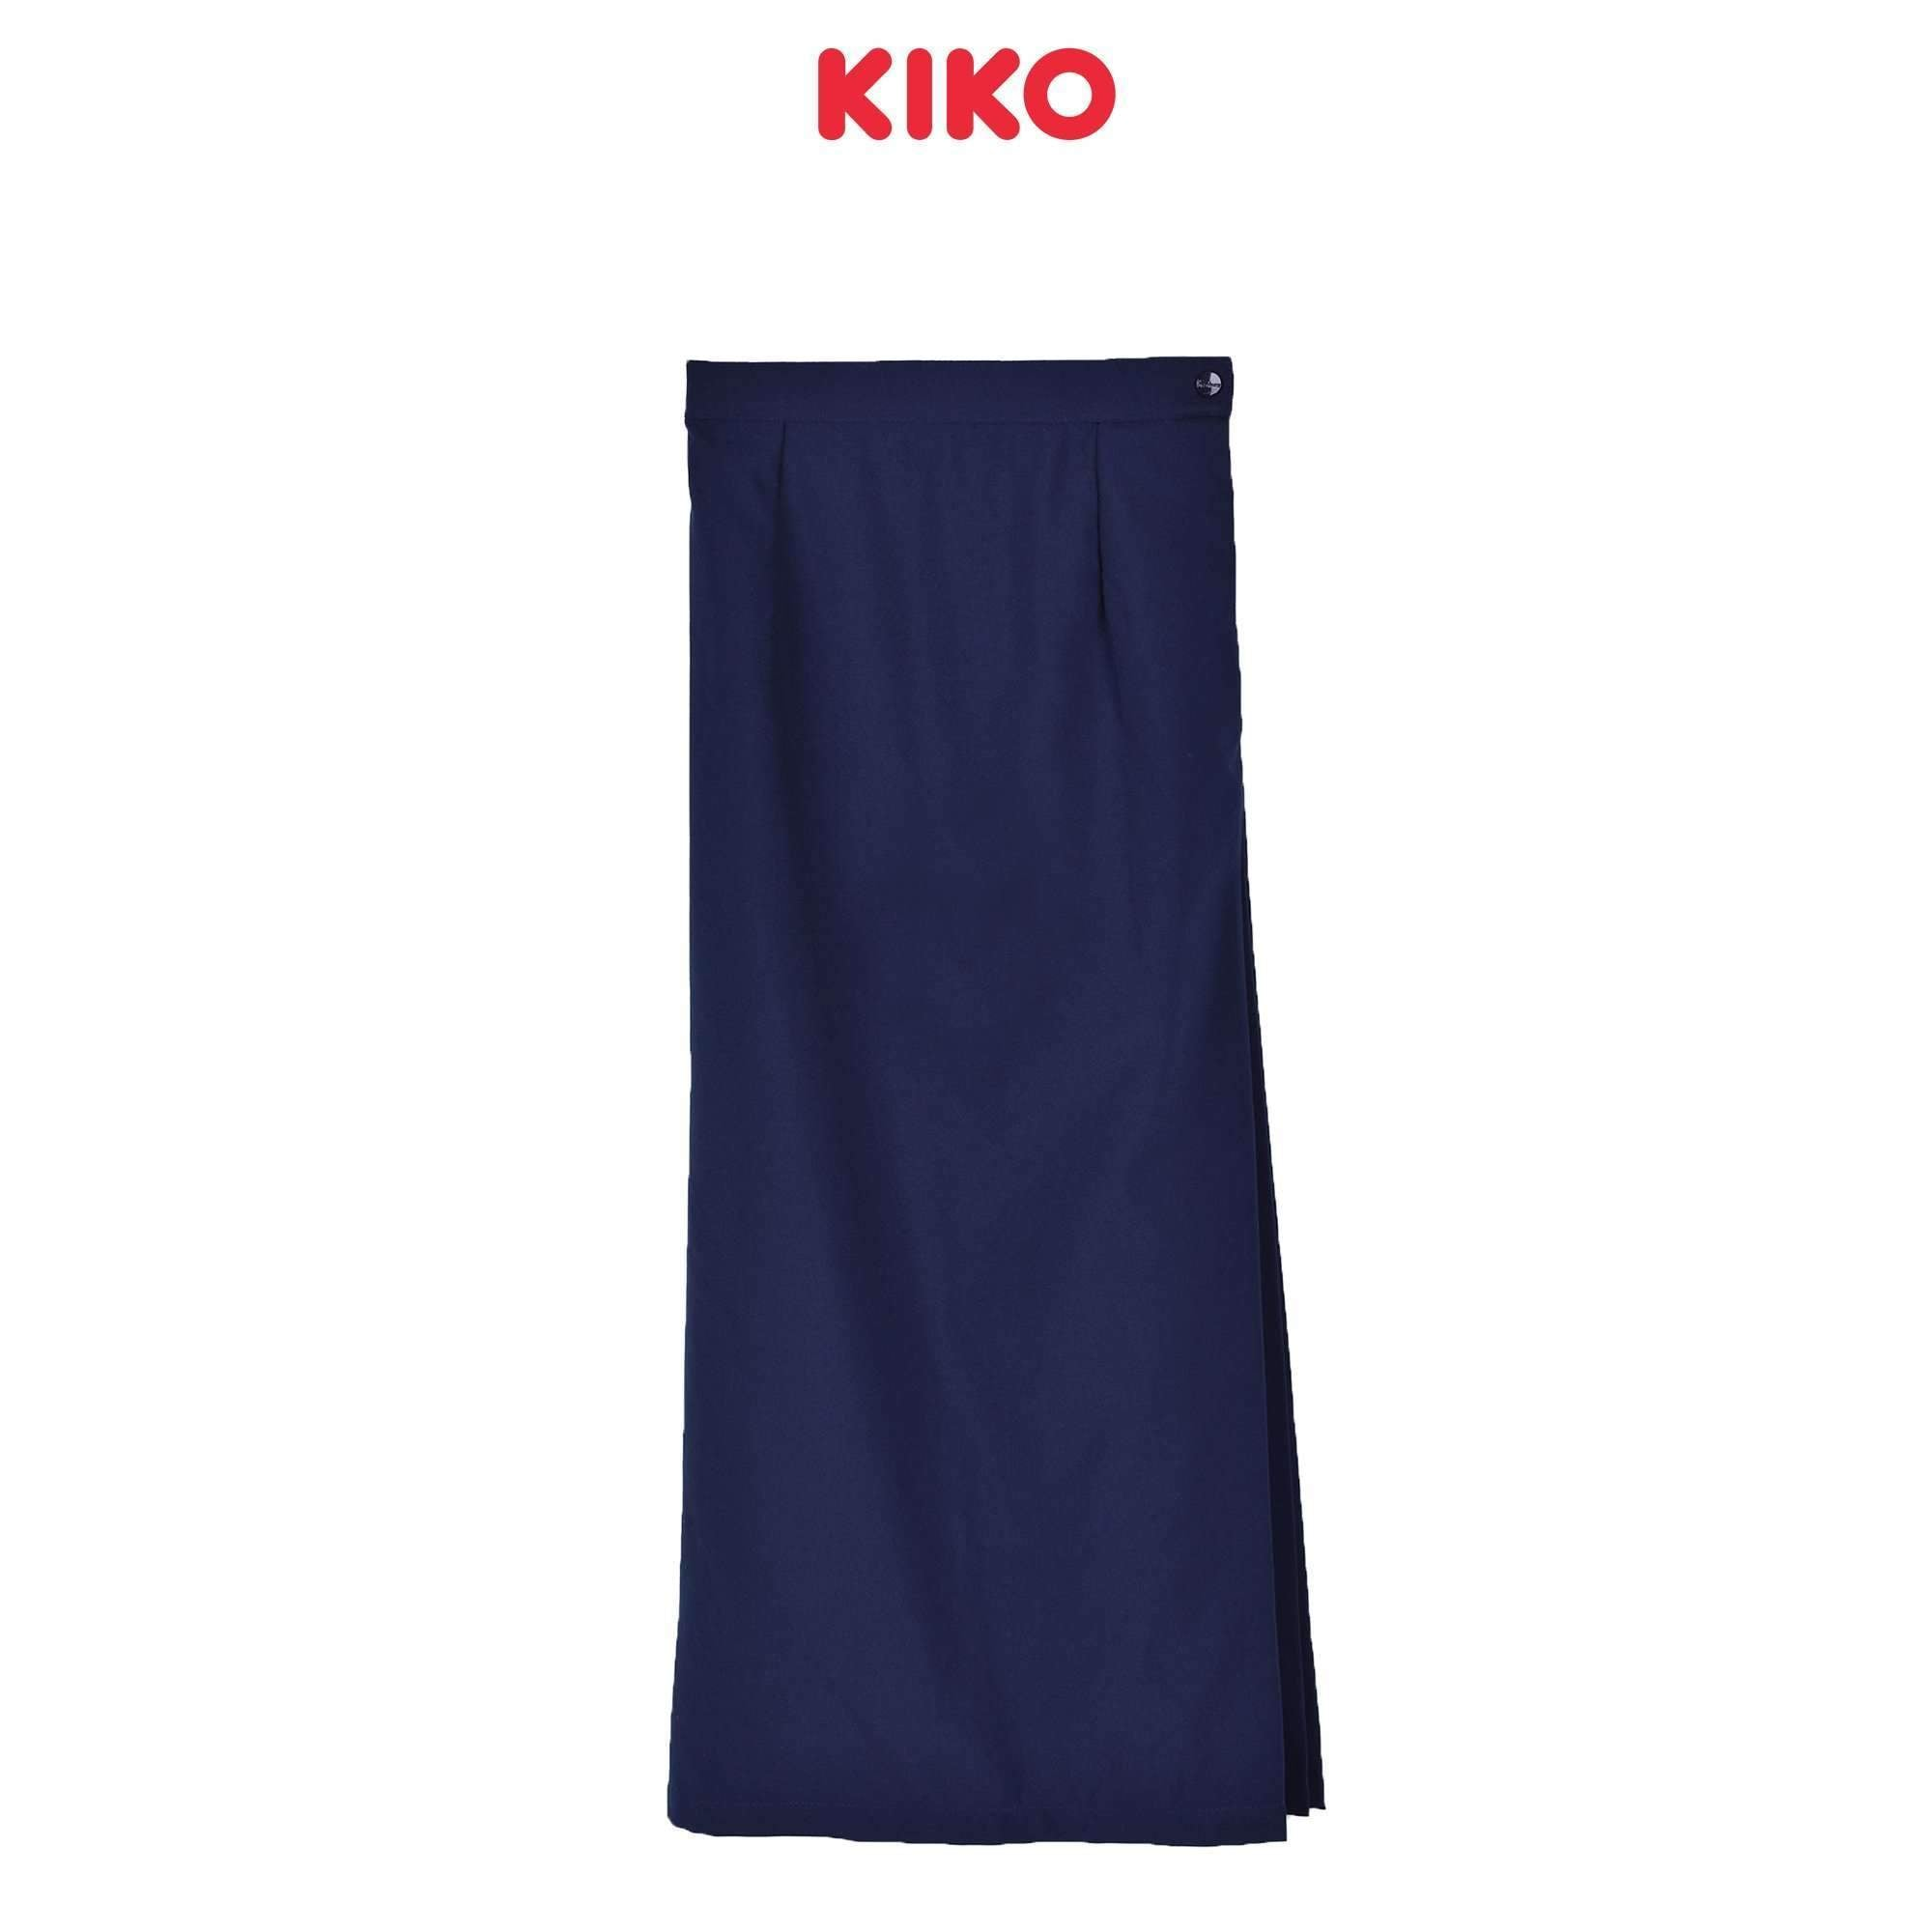 K-Primary Girl Navy Skirt Baju Kurung School Uniform Primary - Navy 121034-26X : Buy K-Primary online at CMG.MY